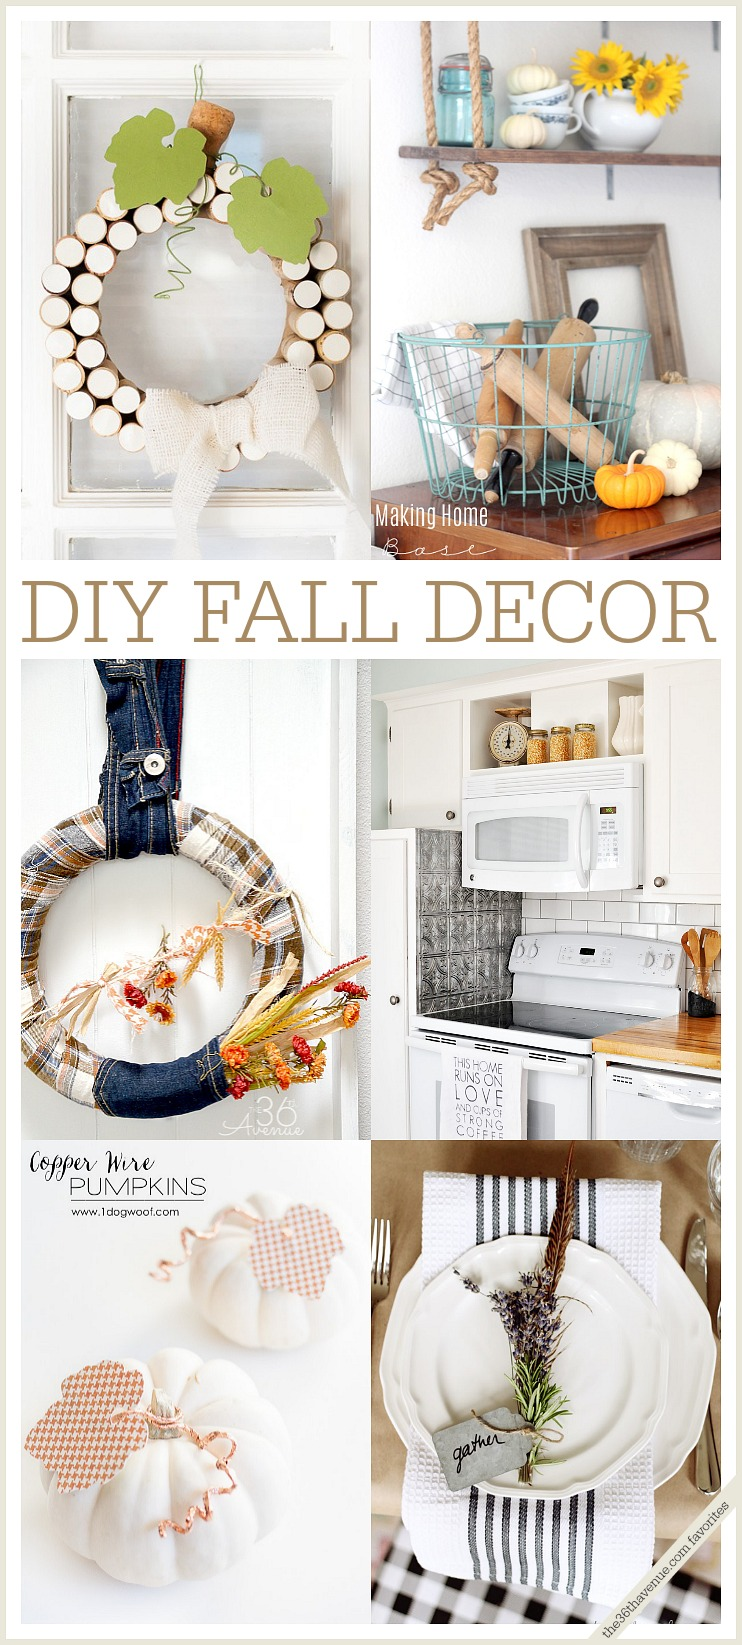 3 Home Decor Trends For Spring Brittany Stager: DIY Home Decor Ideas